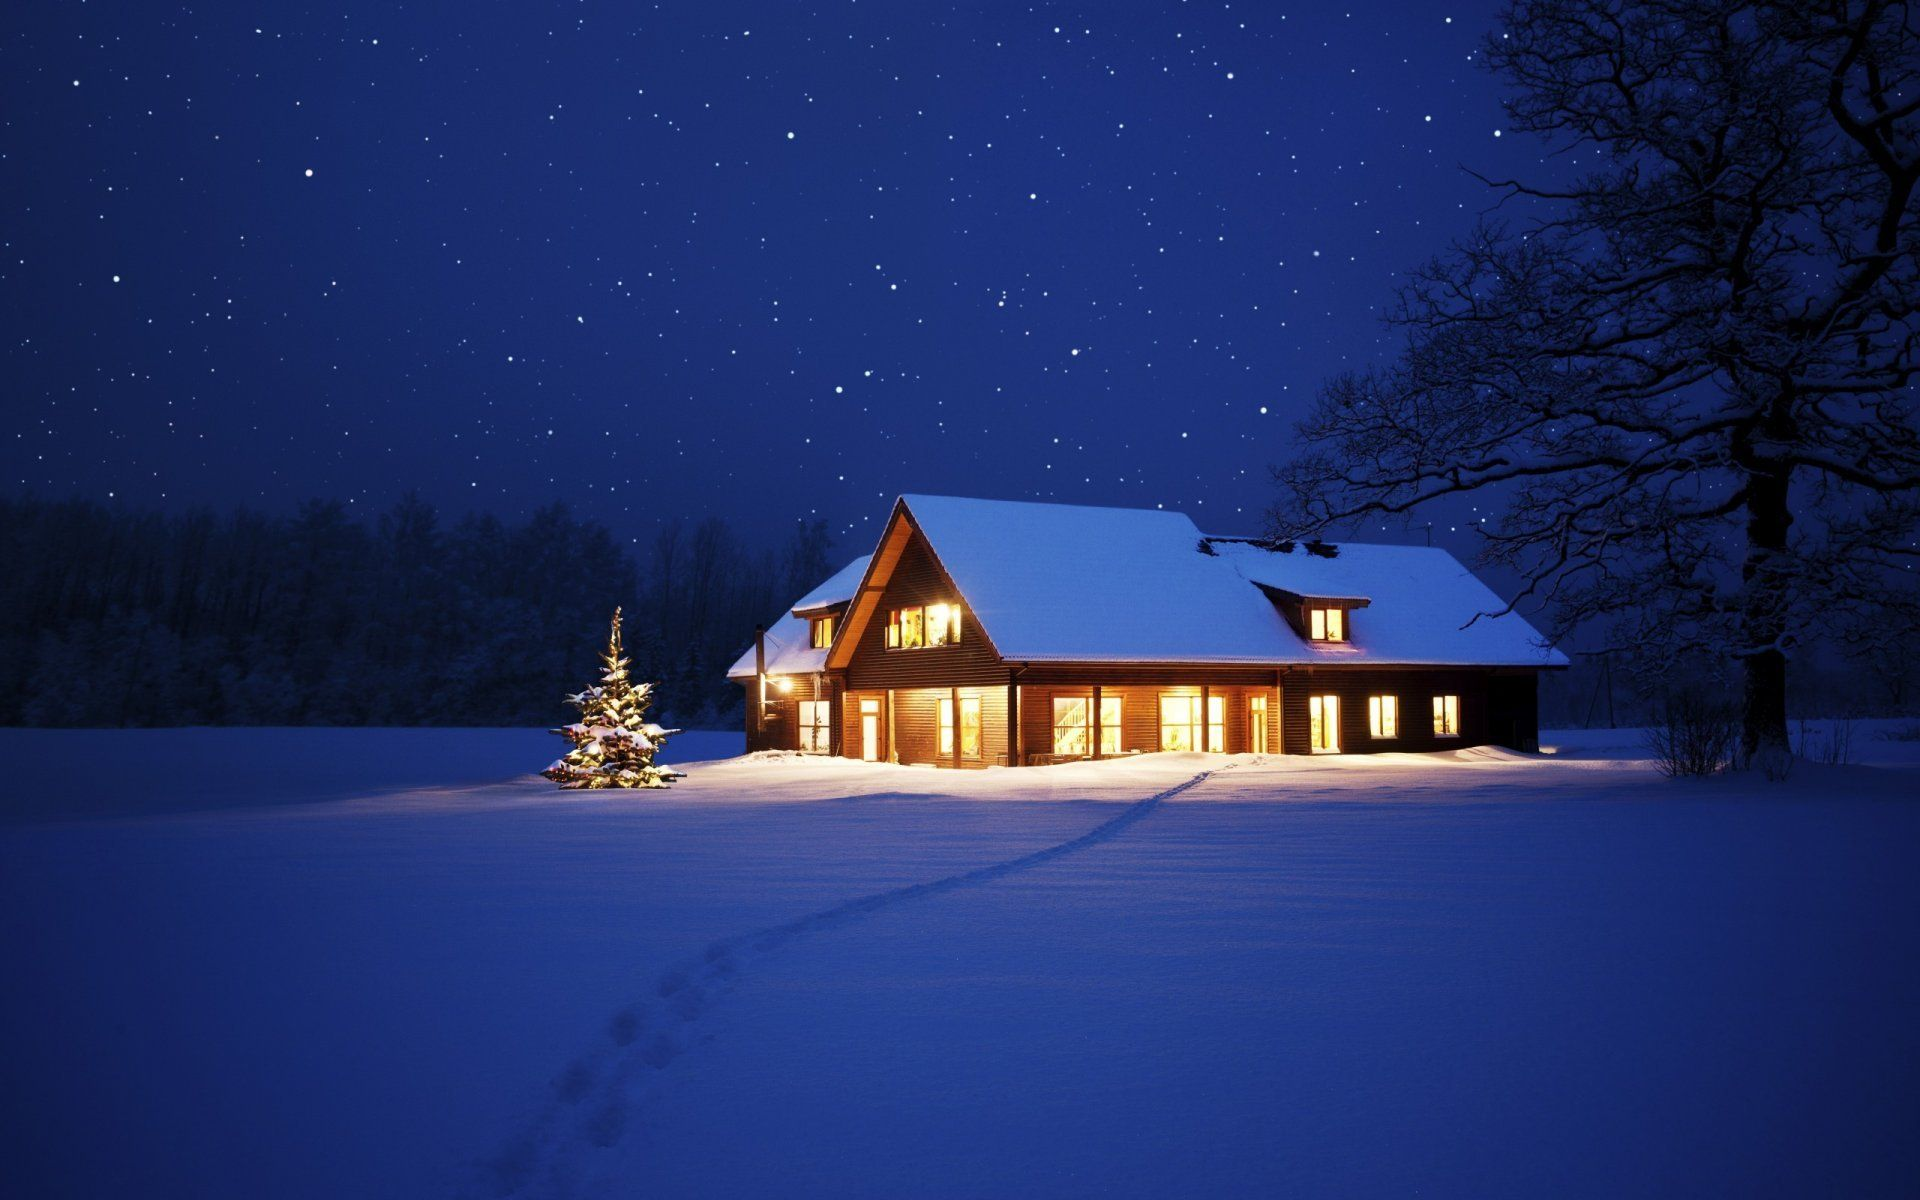 Https W Dog Net Wallpapers 9 17 325022414753017 Nature Landscape Snow Tree Winter House Night Christmas New Year Christ Winter House House In The Woods House